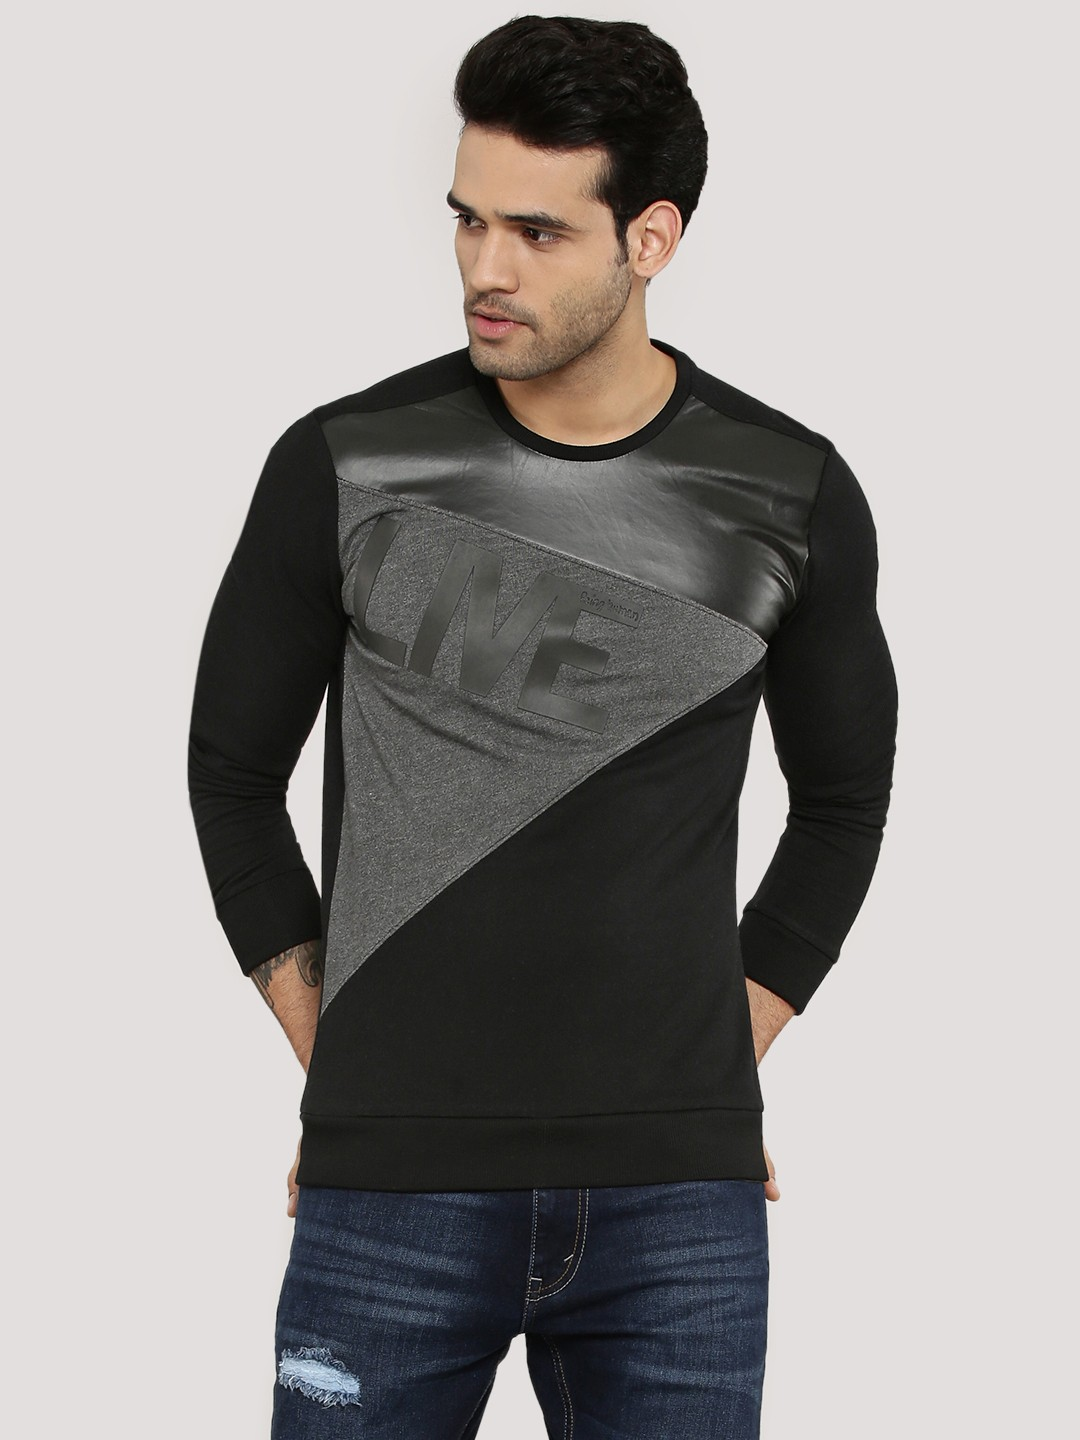 Buy being human cut sew panel t shirt with rubber print for Being human t shirts buy online india